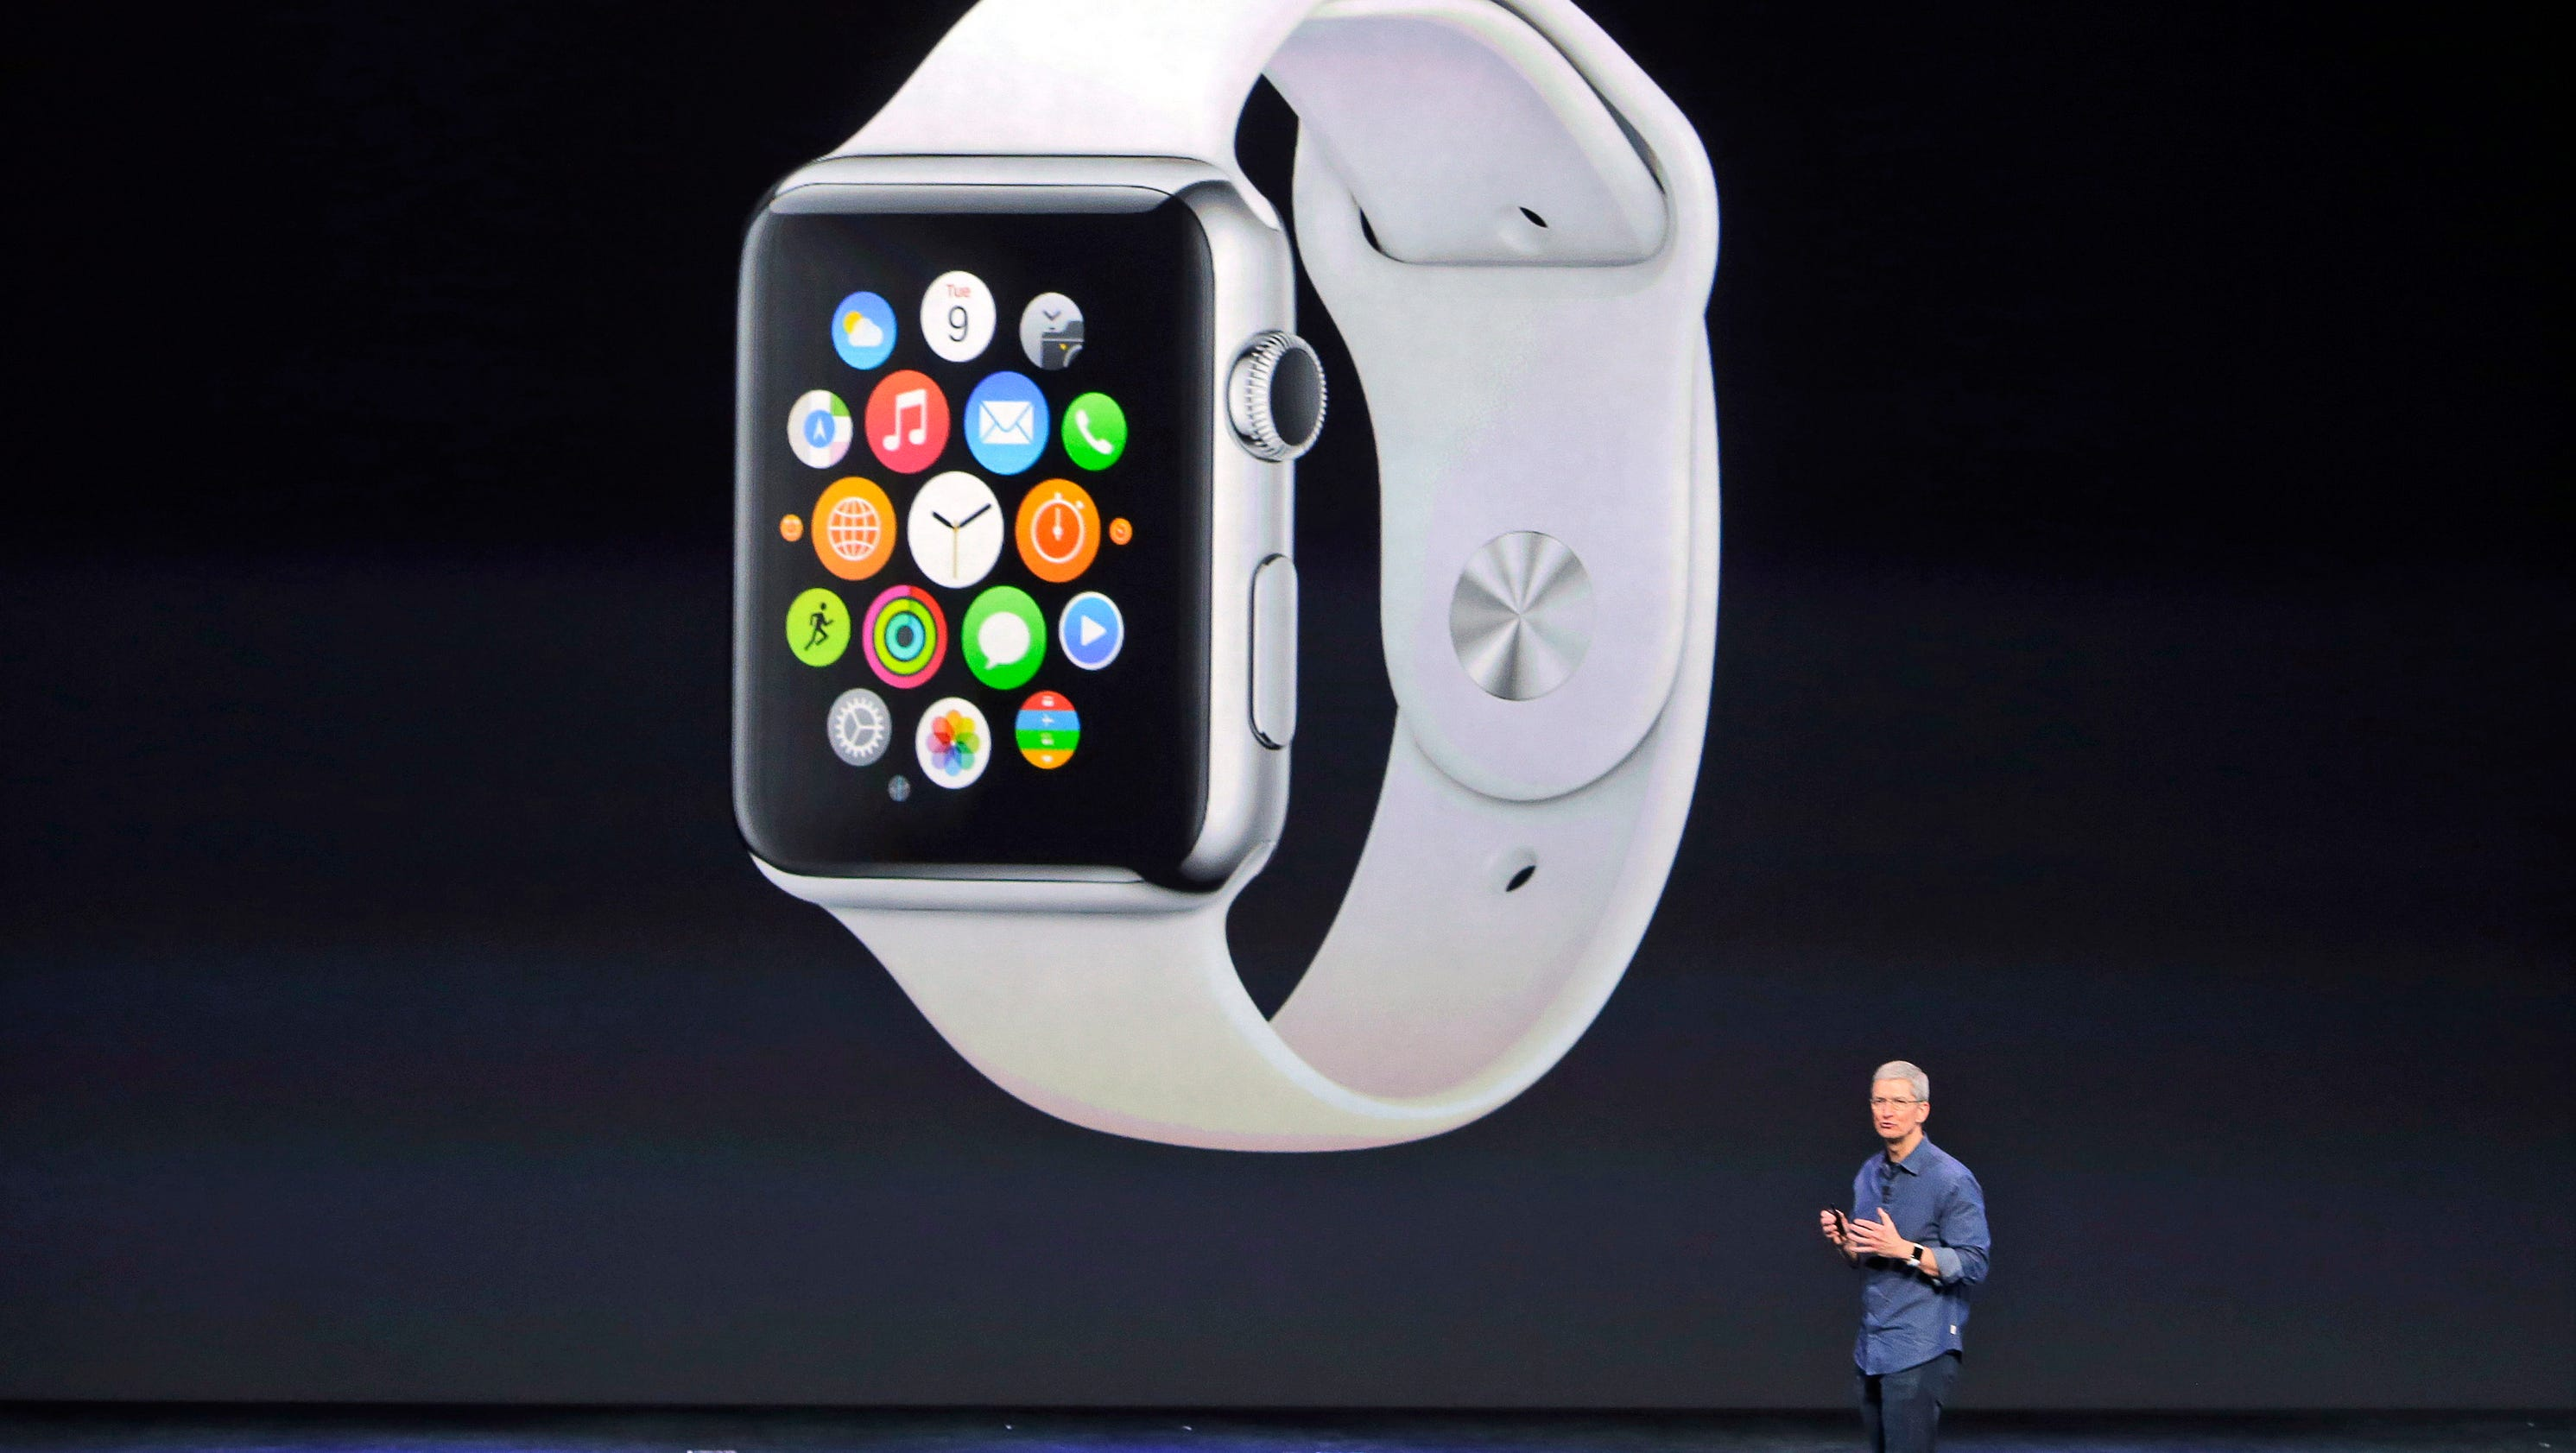 apple personal selling Apple wants its devices to  apple's latest selling  previous keynote—that the company wants to store the personal data its devices.